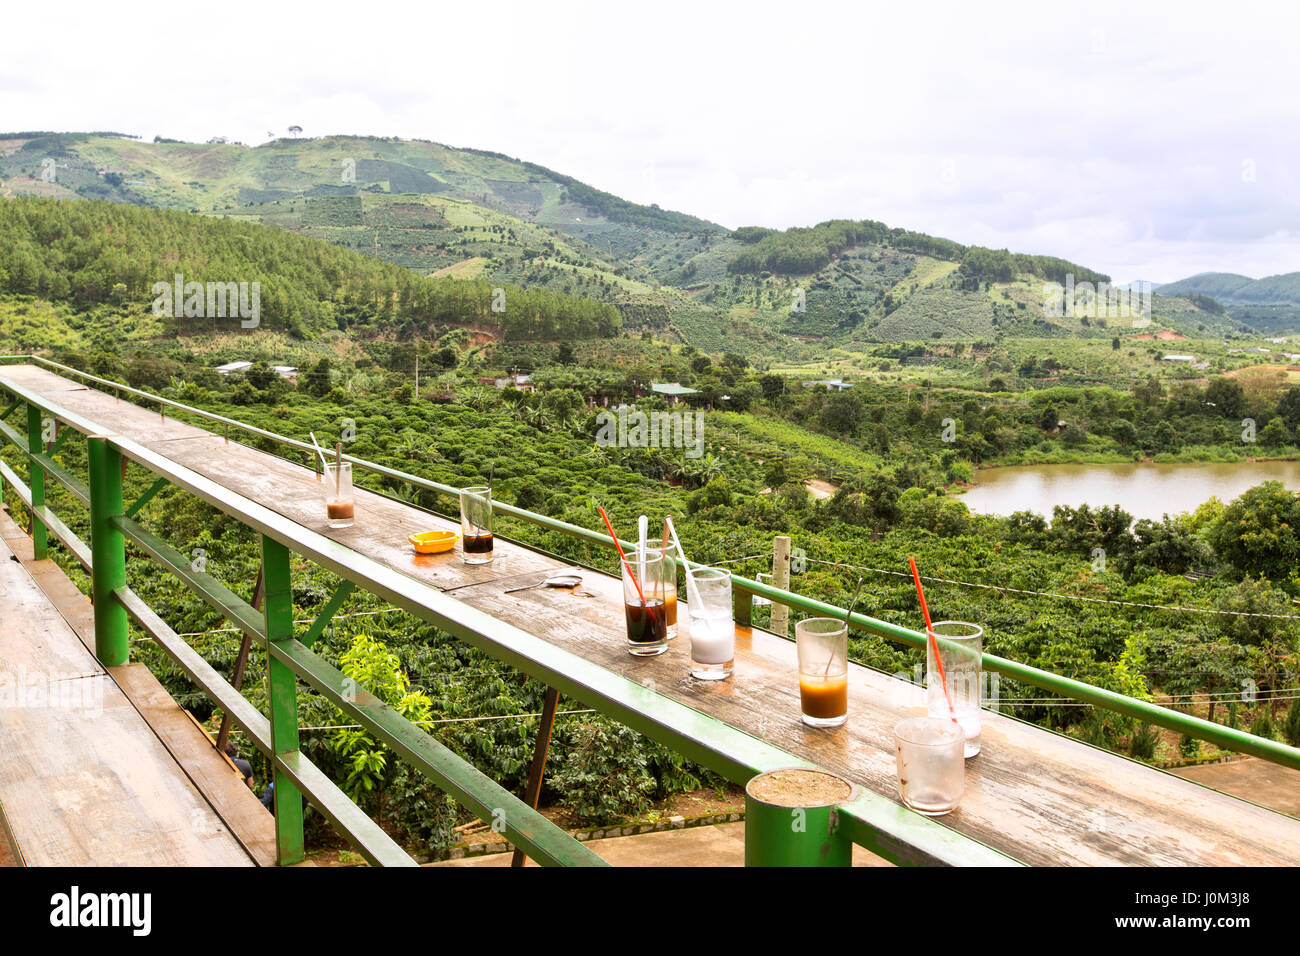 Coffee 'Arabica' plantation, empty beverage glasses, overlooking from Me Linh Coffee Garden. - Stock Image